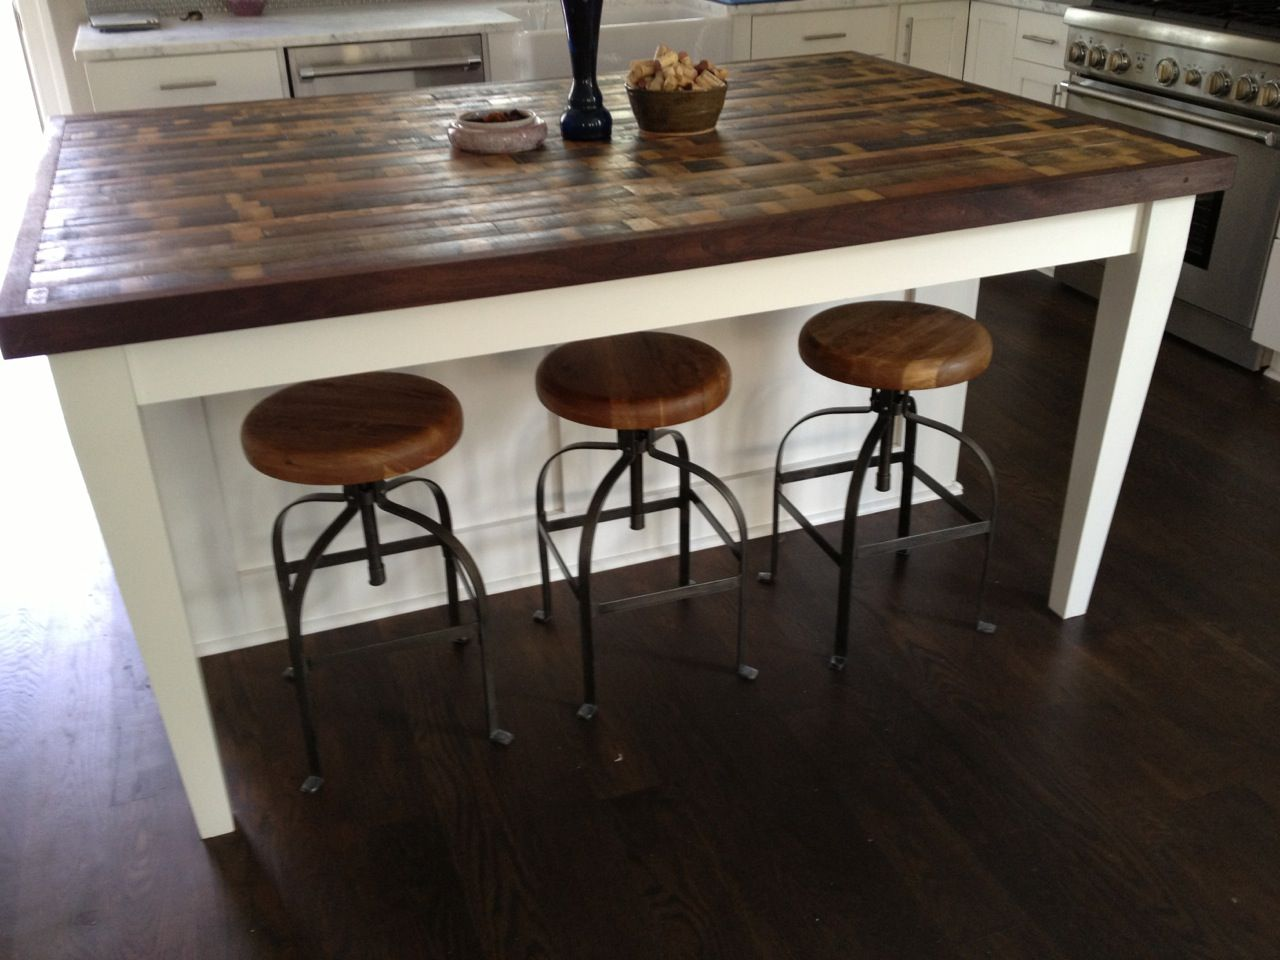 Best 25+ Reclaimed wood kitchen ideas on Pinterest | Wood wine ...